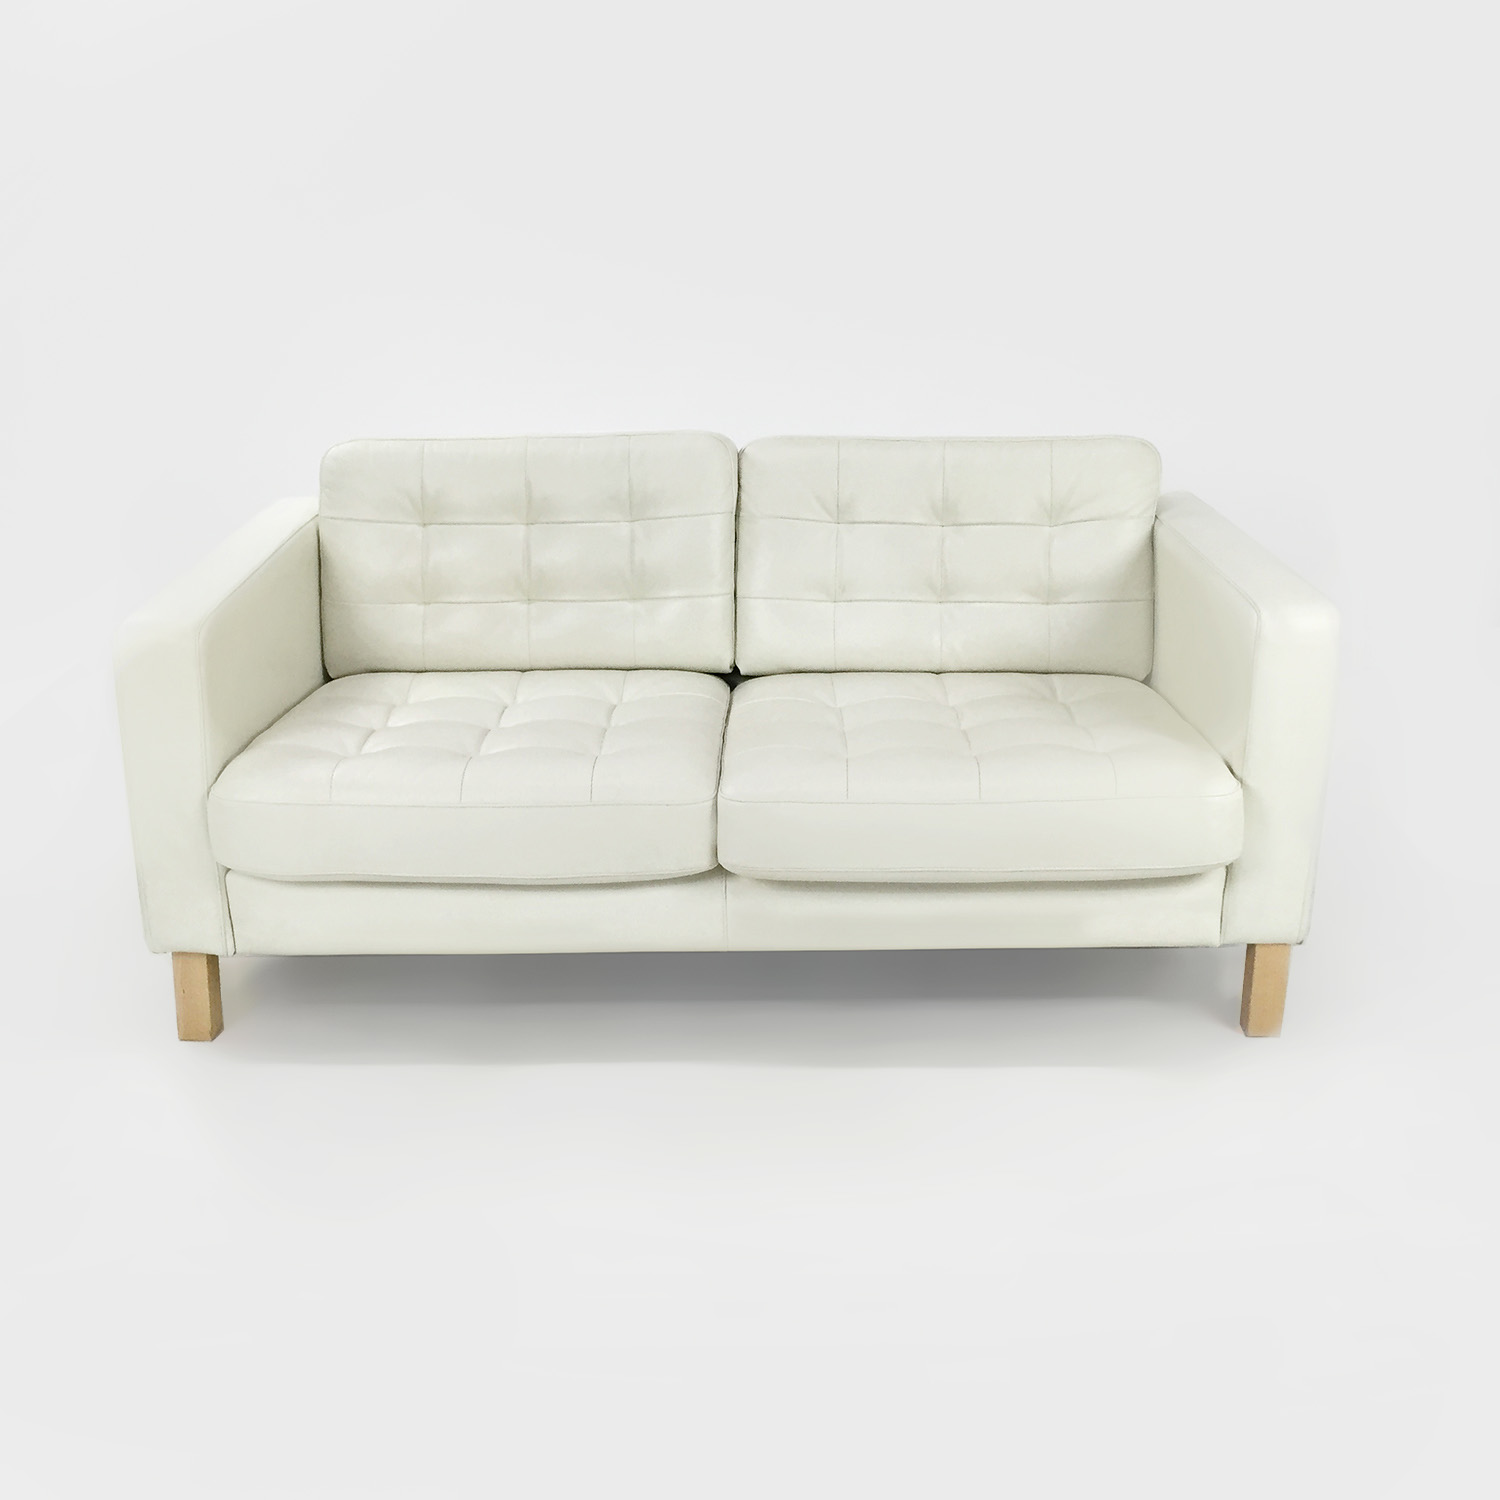 Ikea White Leather Couch On